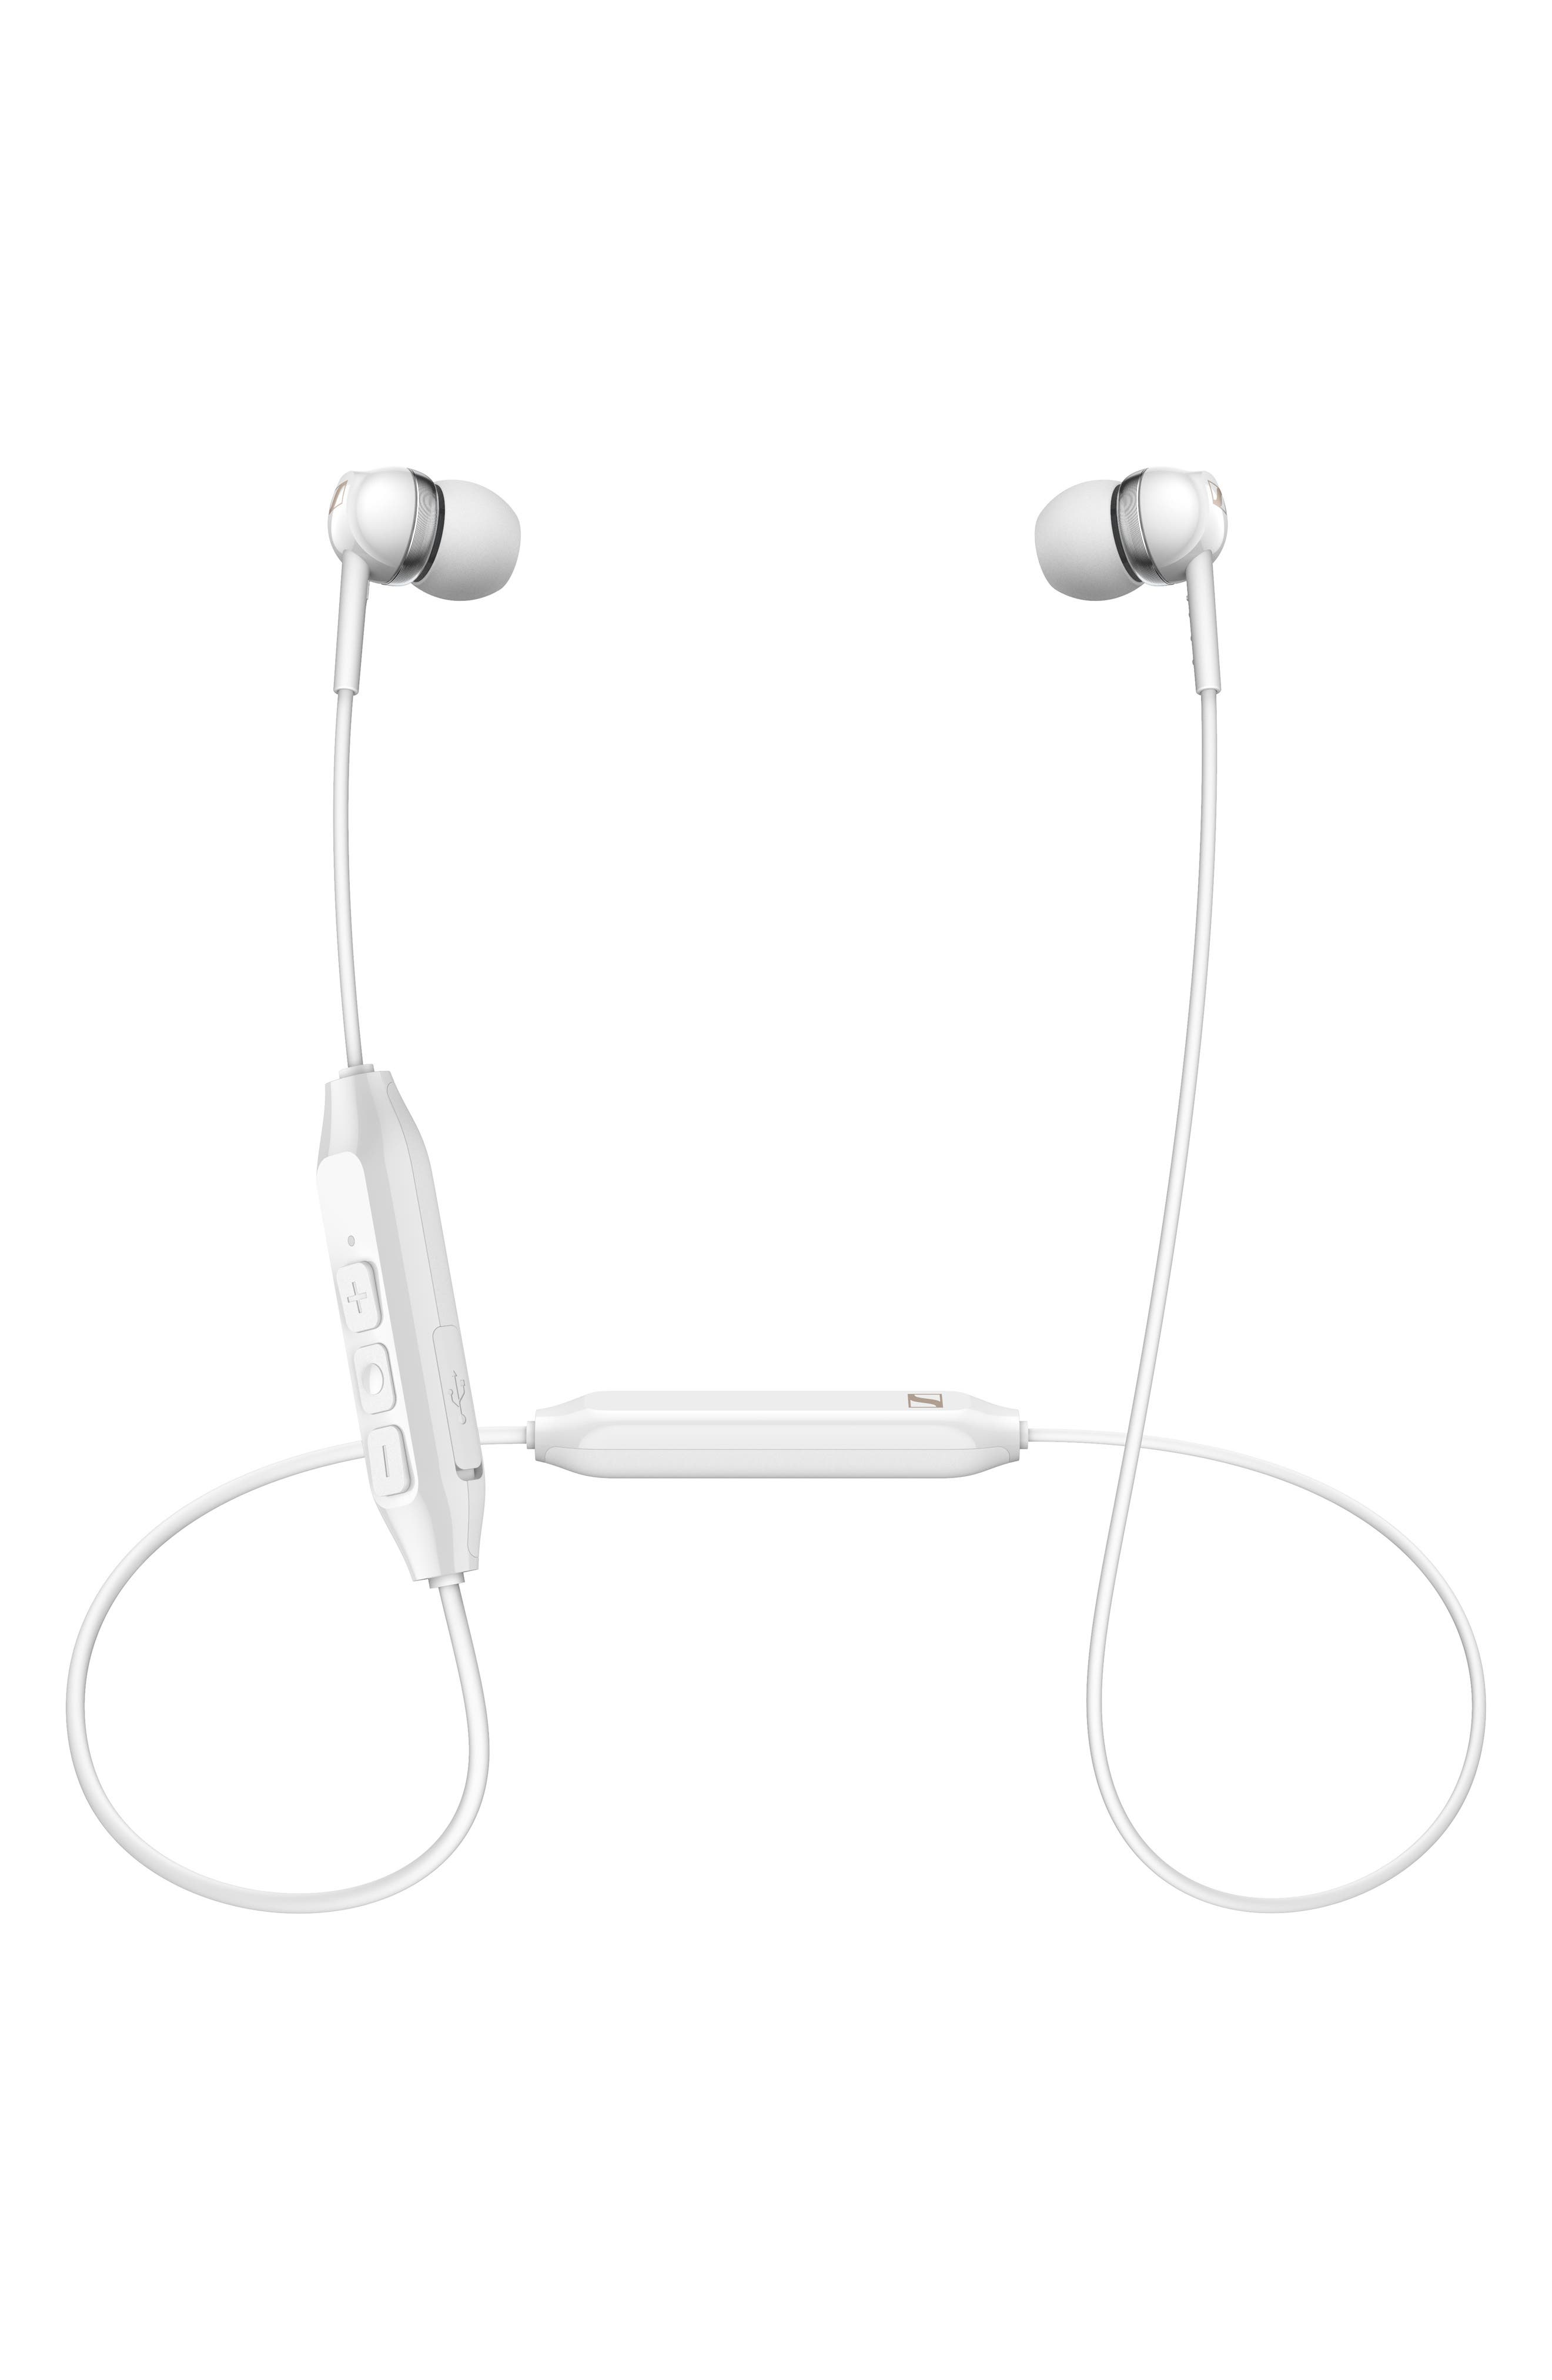 These lightweight headphones provide seamless wireless connectivity and high-quality audio, making them essential for everyday use. Headphone style: EarbudIncludes: Four sets of ear adapters; USB-C charging cable; quick guide; safety guideWireless connectivity: Bluetooth 5.0; AAC; SBCSystem compatibility: Compatible with most Bluetooth devicesAdditional features: Three-button remote for call and music management Style Name: Sennheiser Cx 150Bt